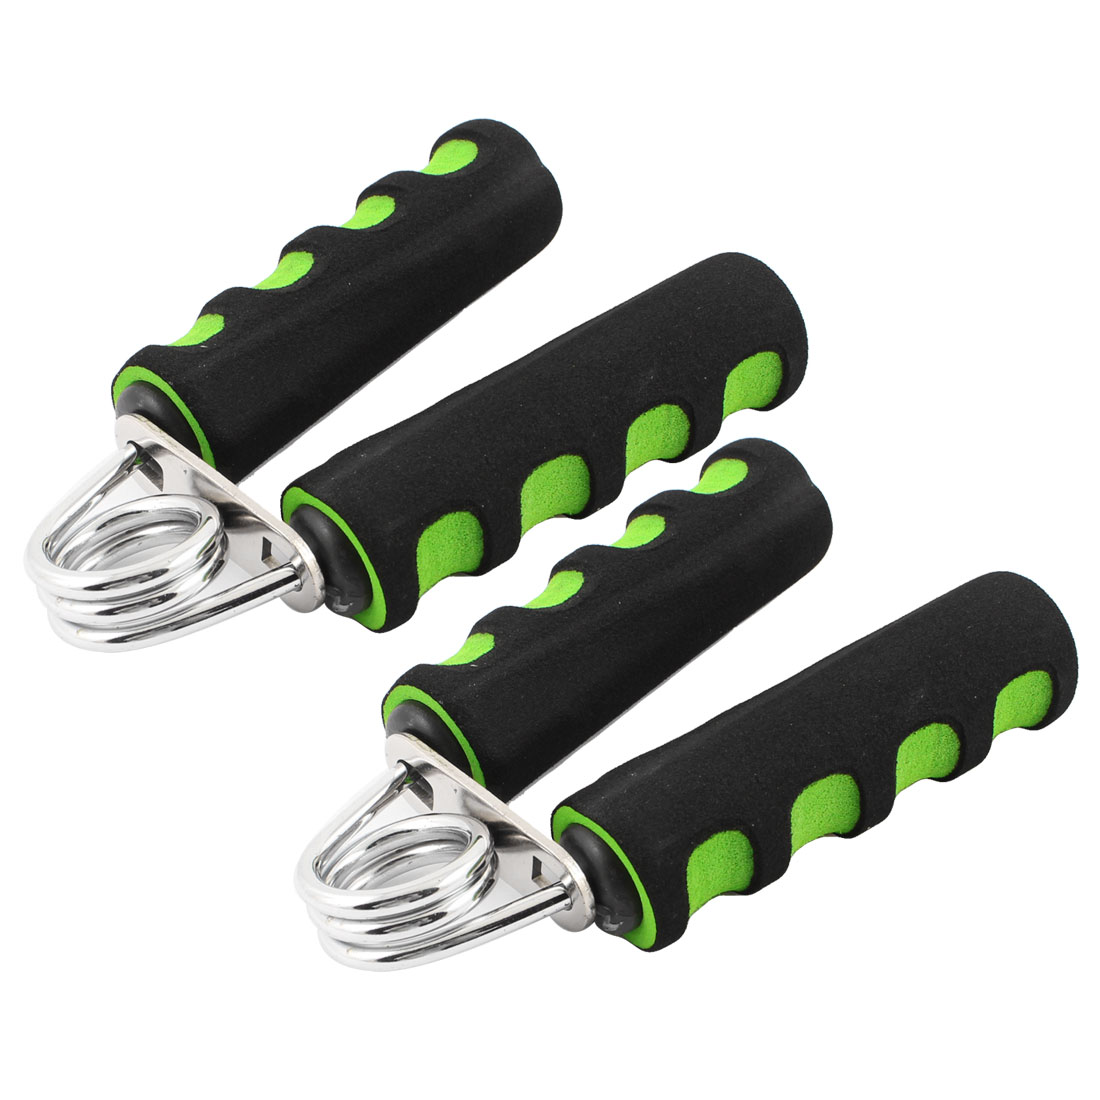 2 Pcs Black Green Foam Coated Nonslip Handle Arm Strength Hand Grip Grippers